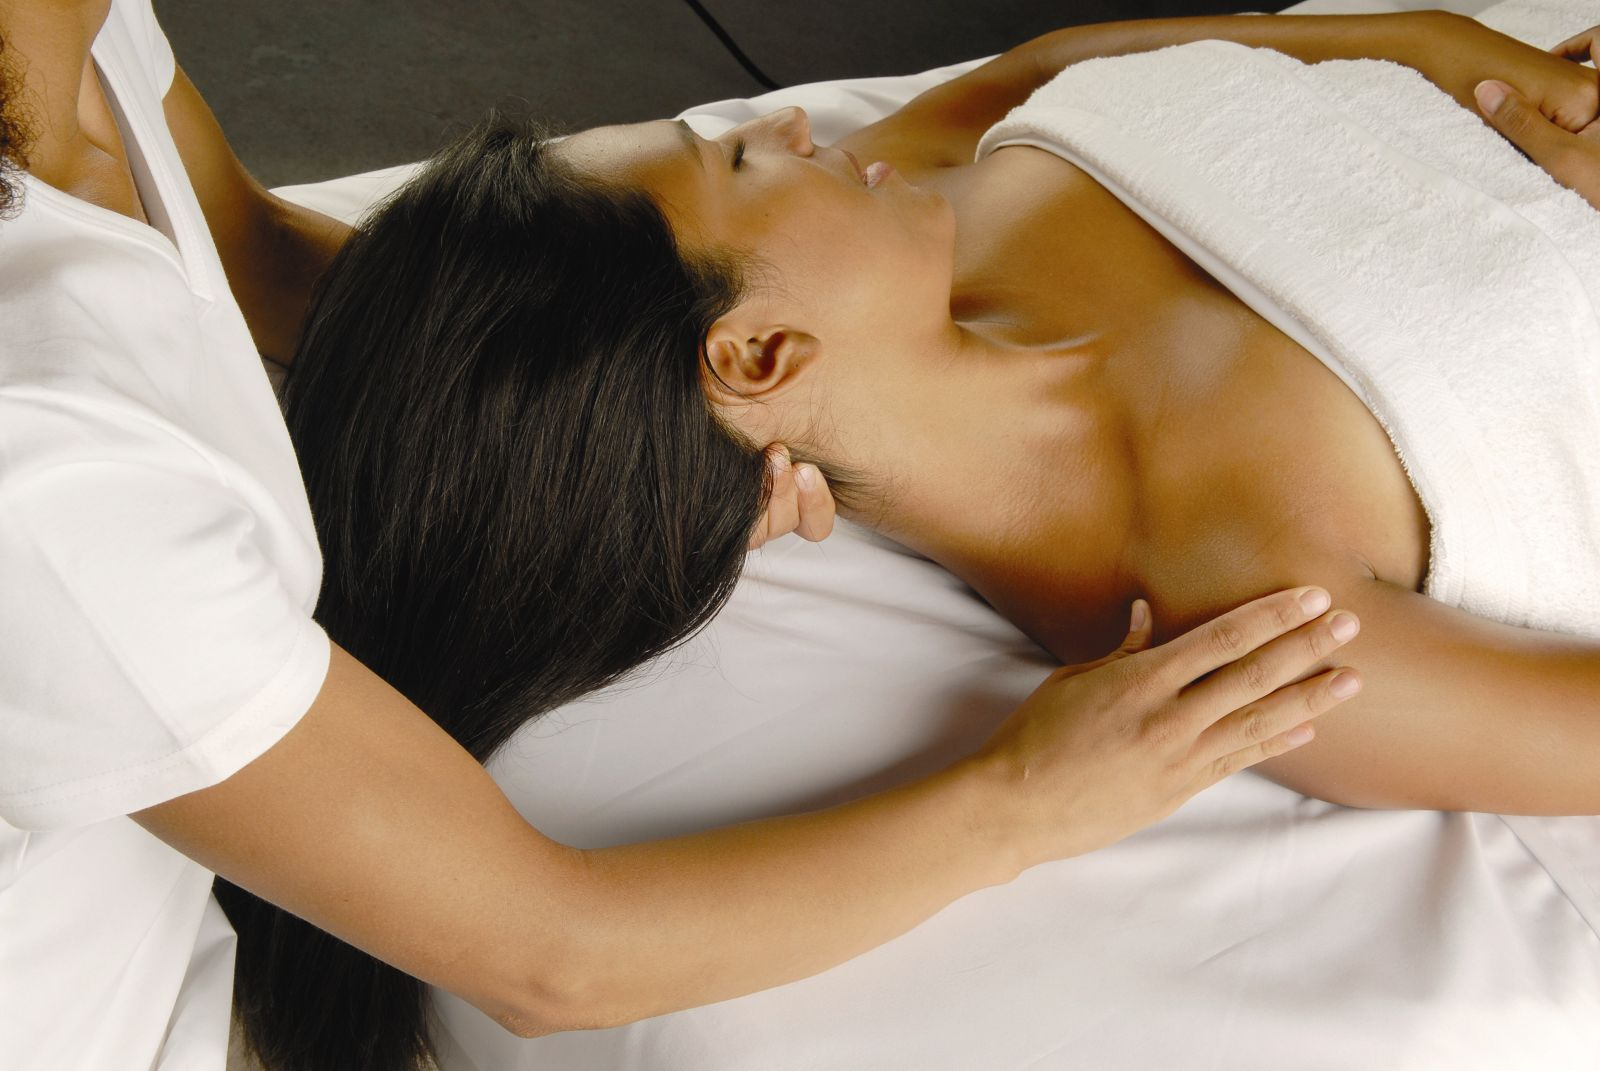 Picture of young woman getting massage.